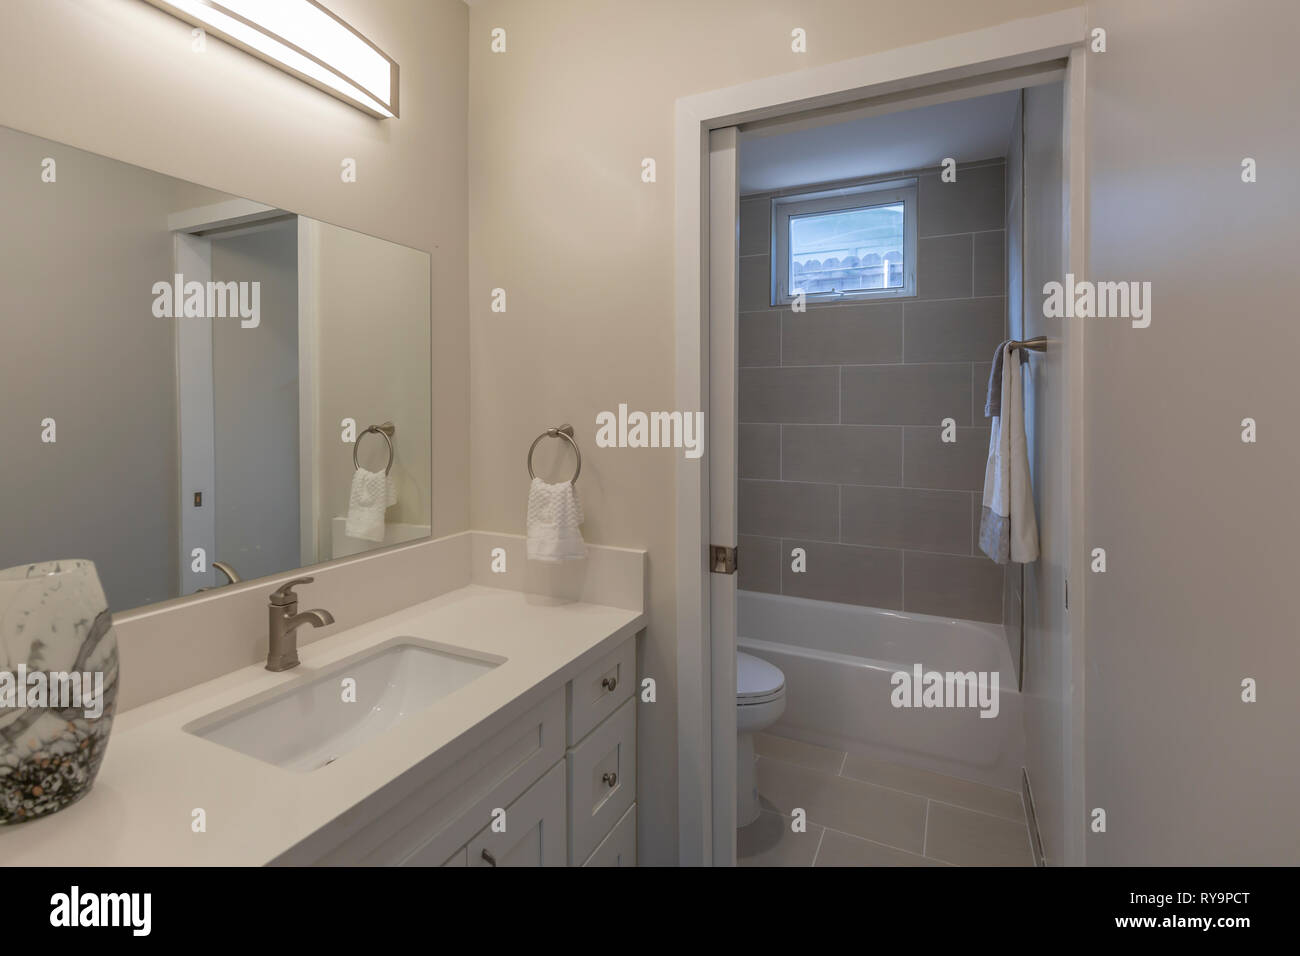 Updated Bathroom interior Stock Photo